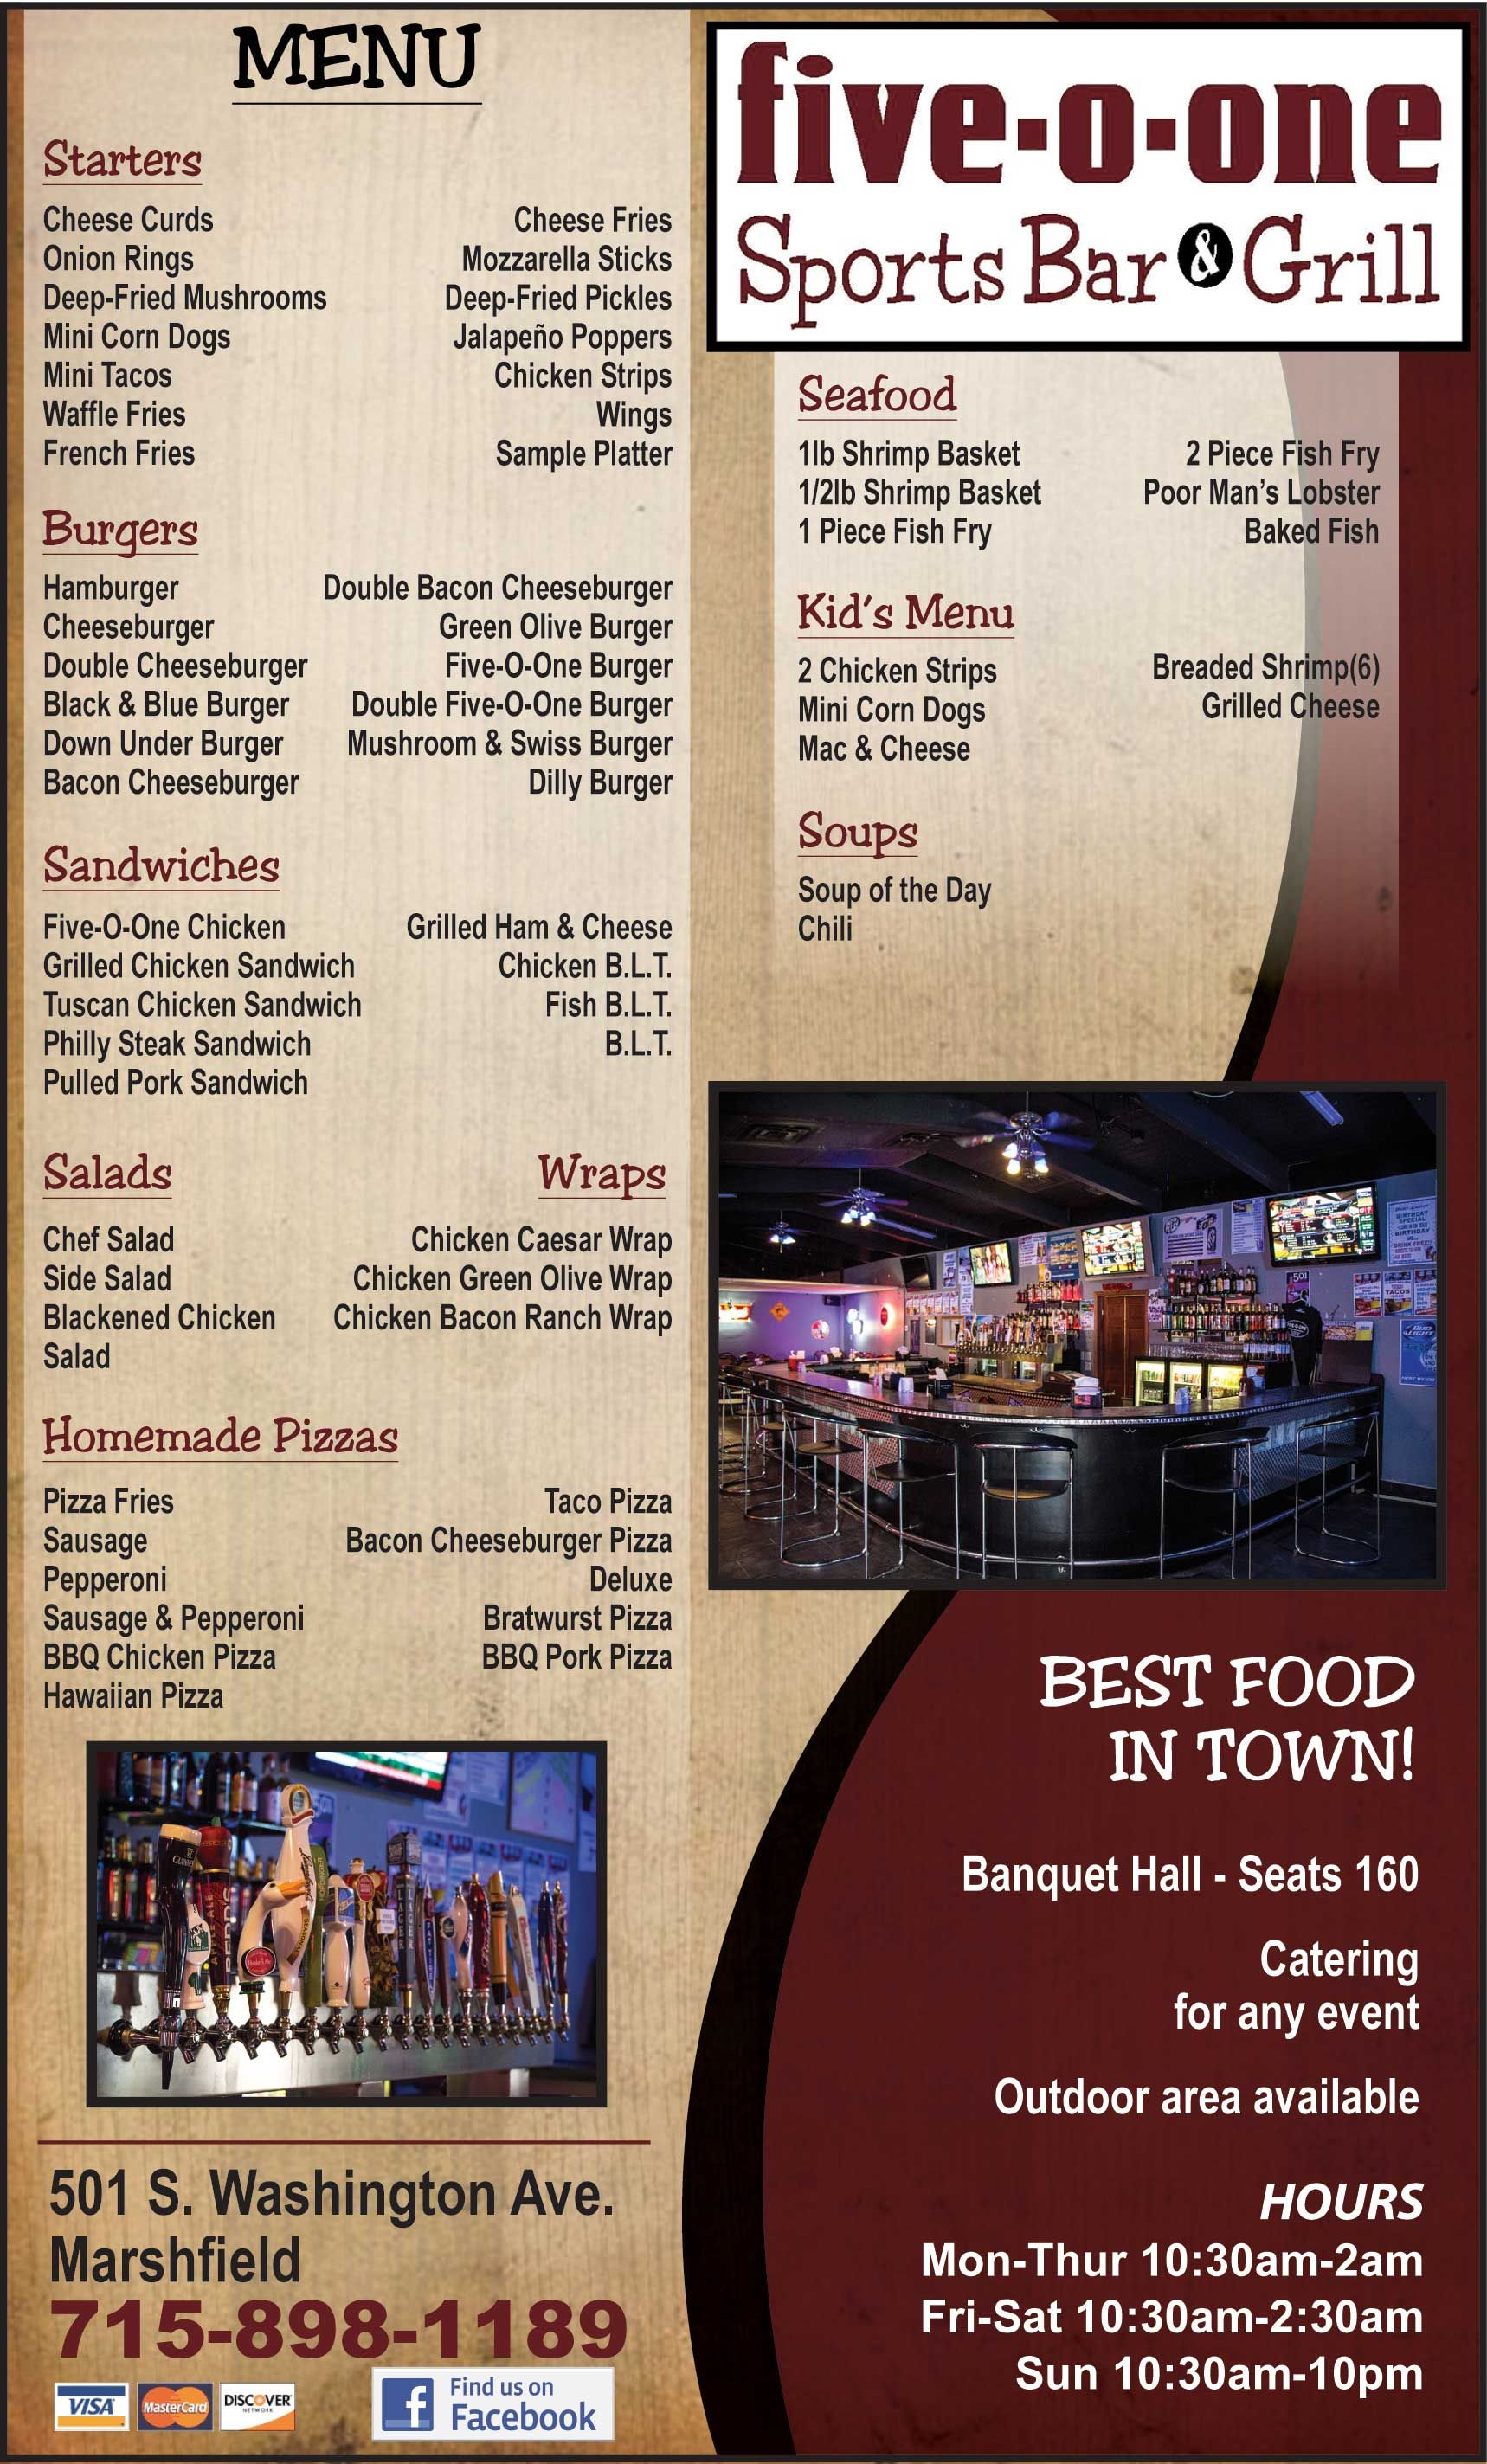 Restaurant Menu Graphic Design Services For Sports Bar And Grill